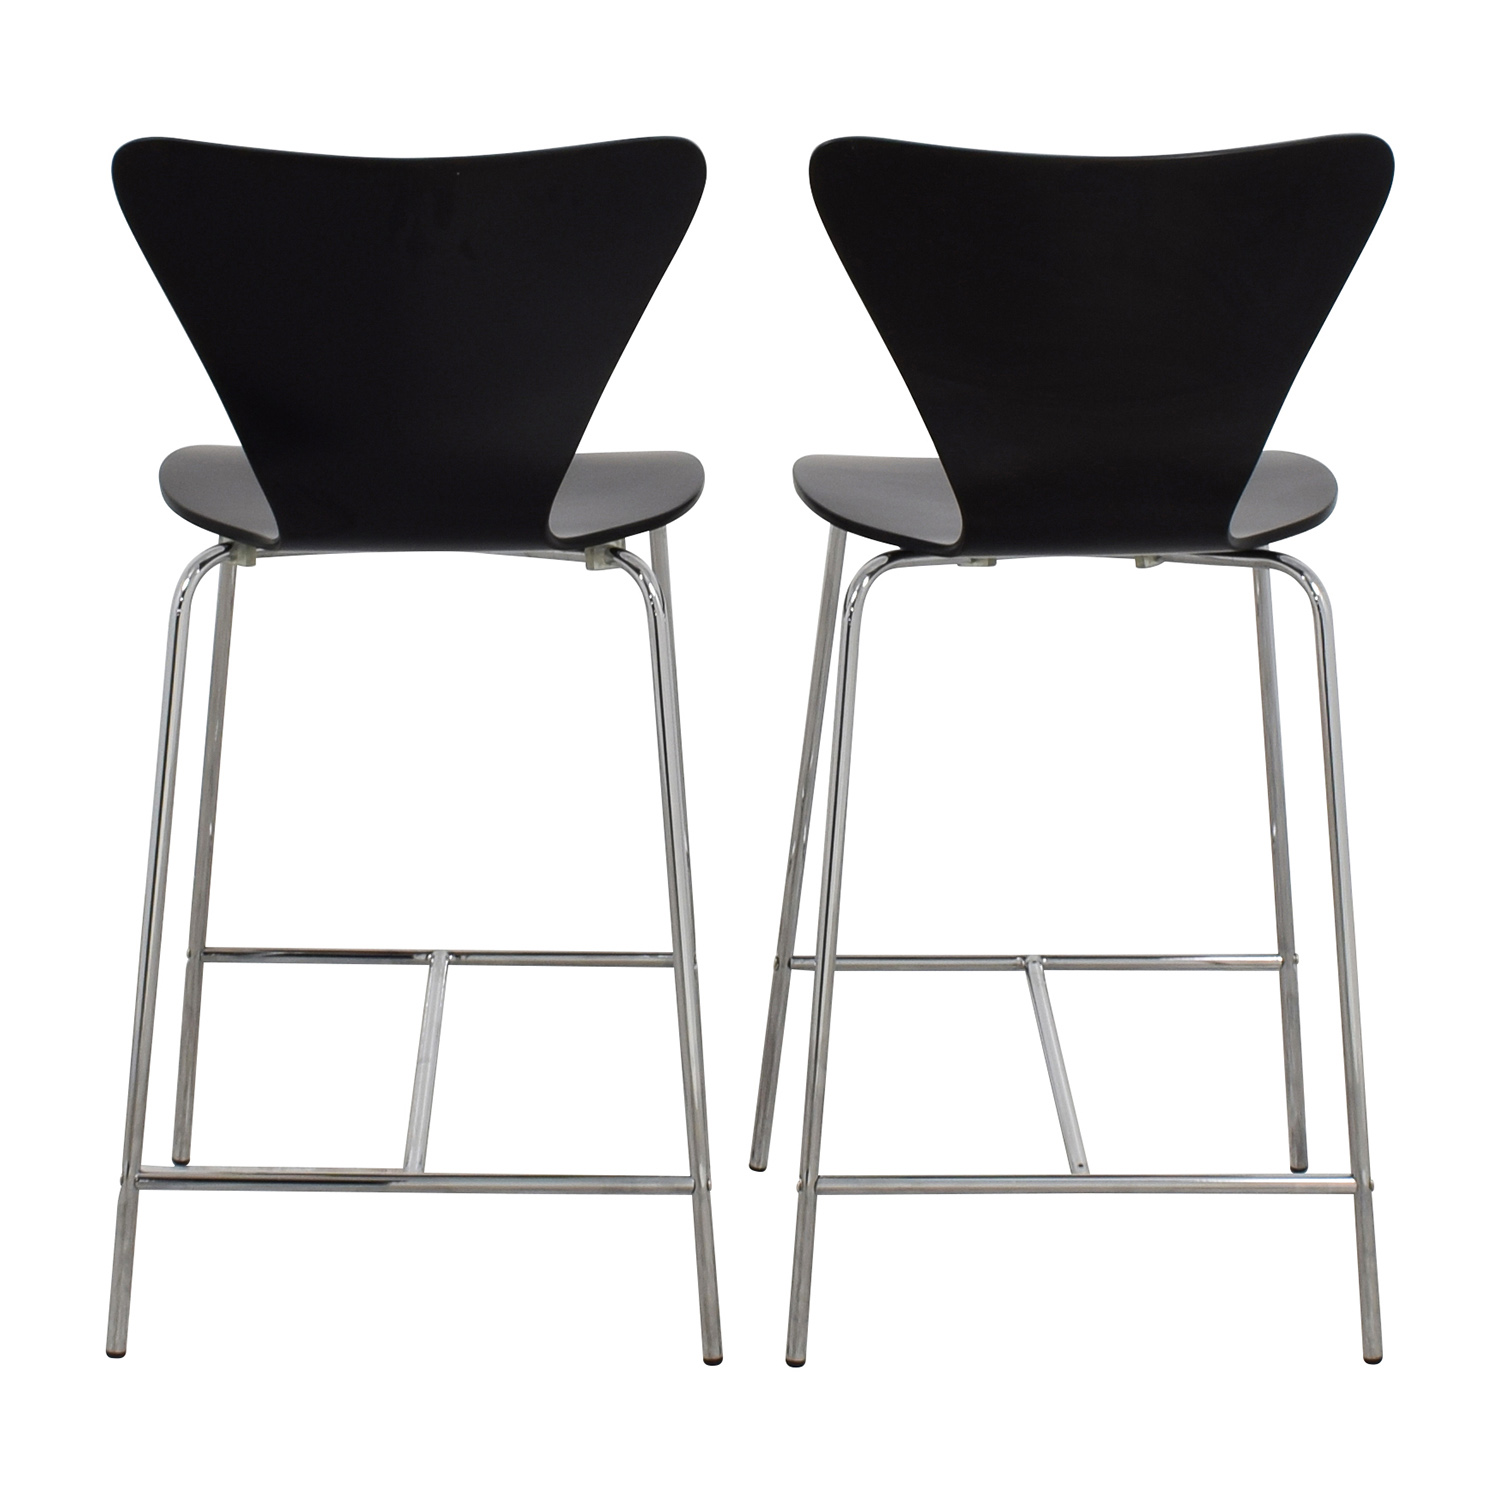 InMod InMod Tendy-C Counter Chair Black Chairs